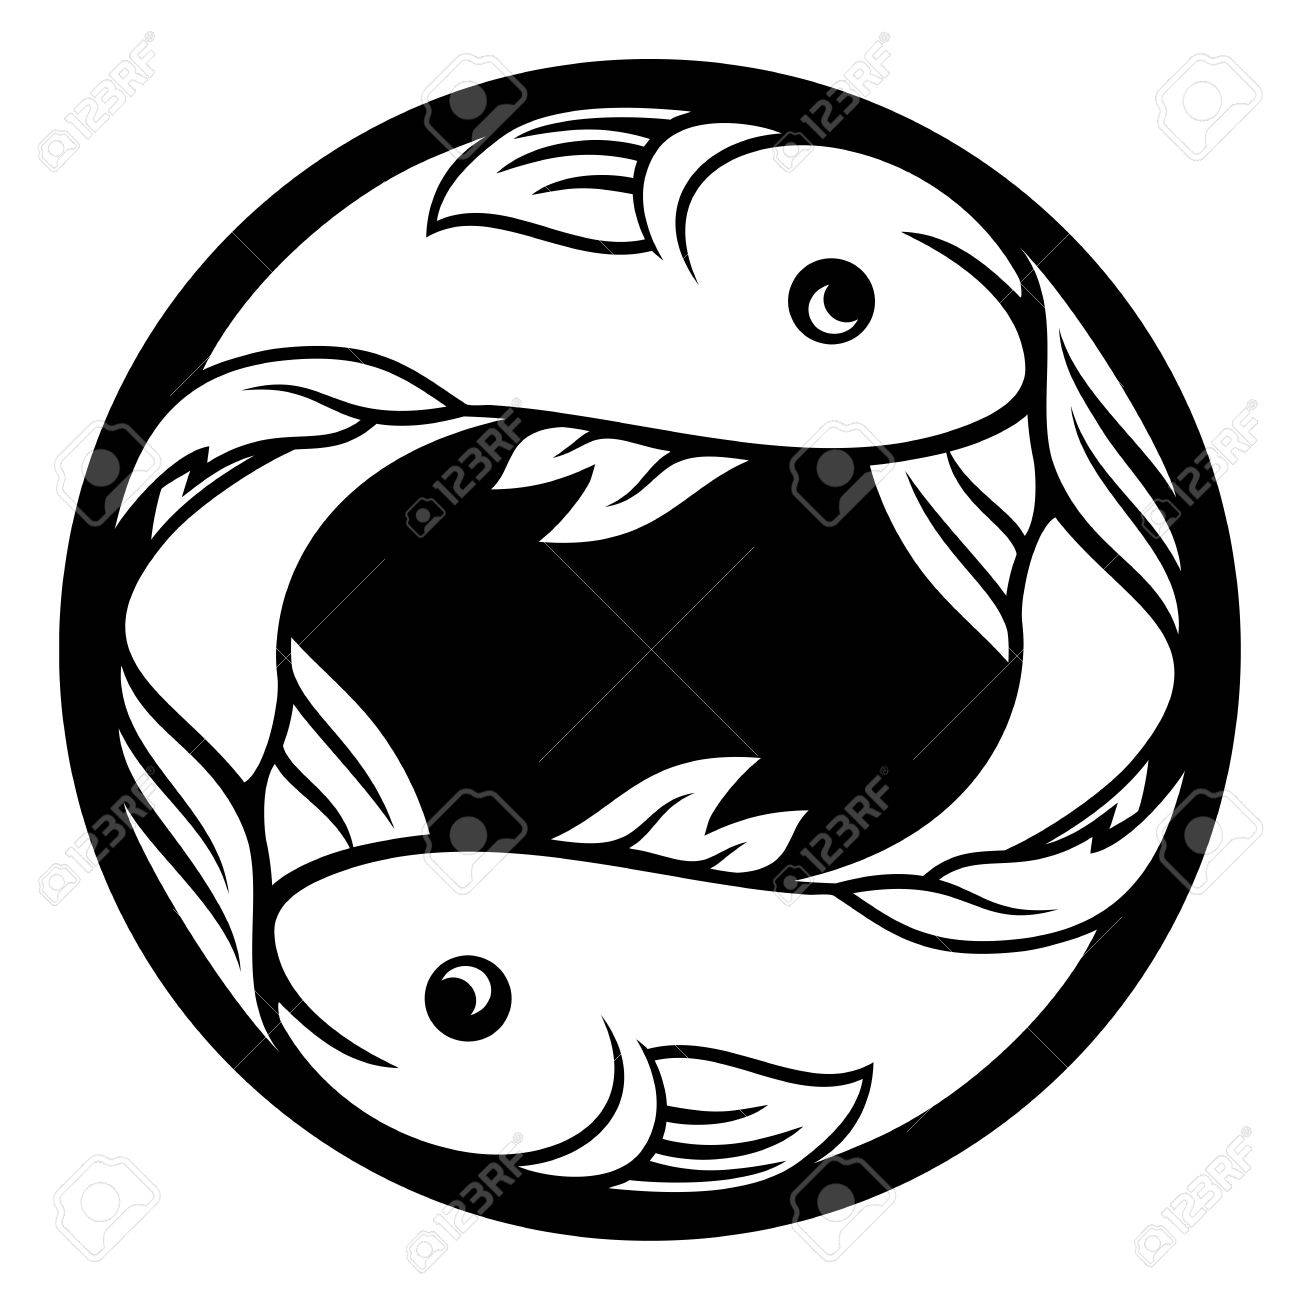 1300x1300 Pisces Fish Zodiac Horoscope Astrology Sign Royalty Free Cliparts